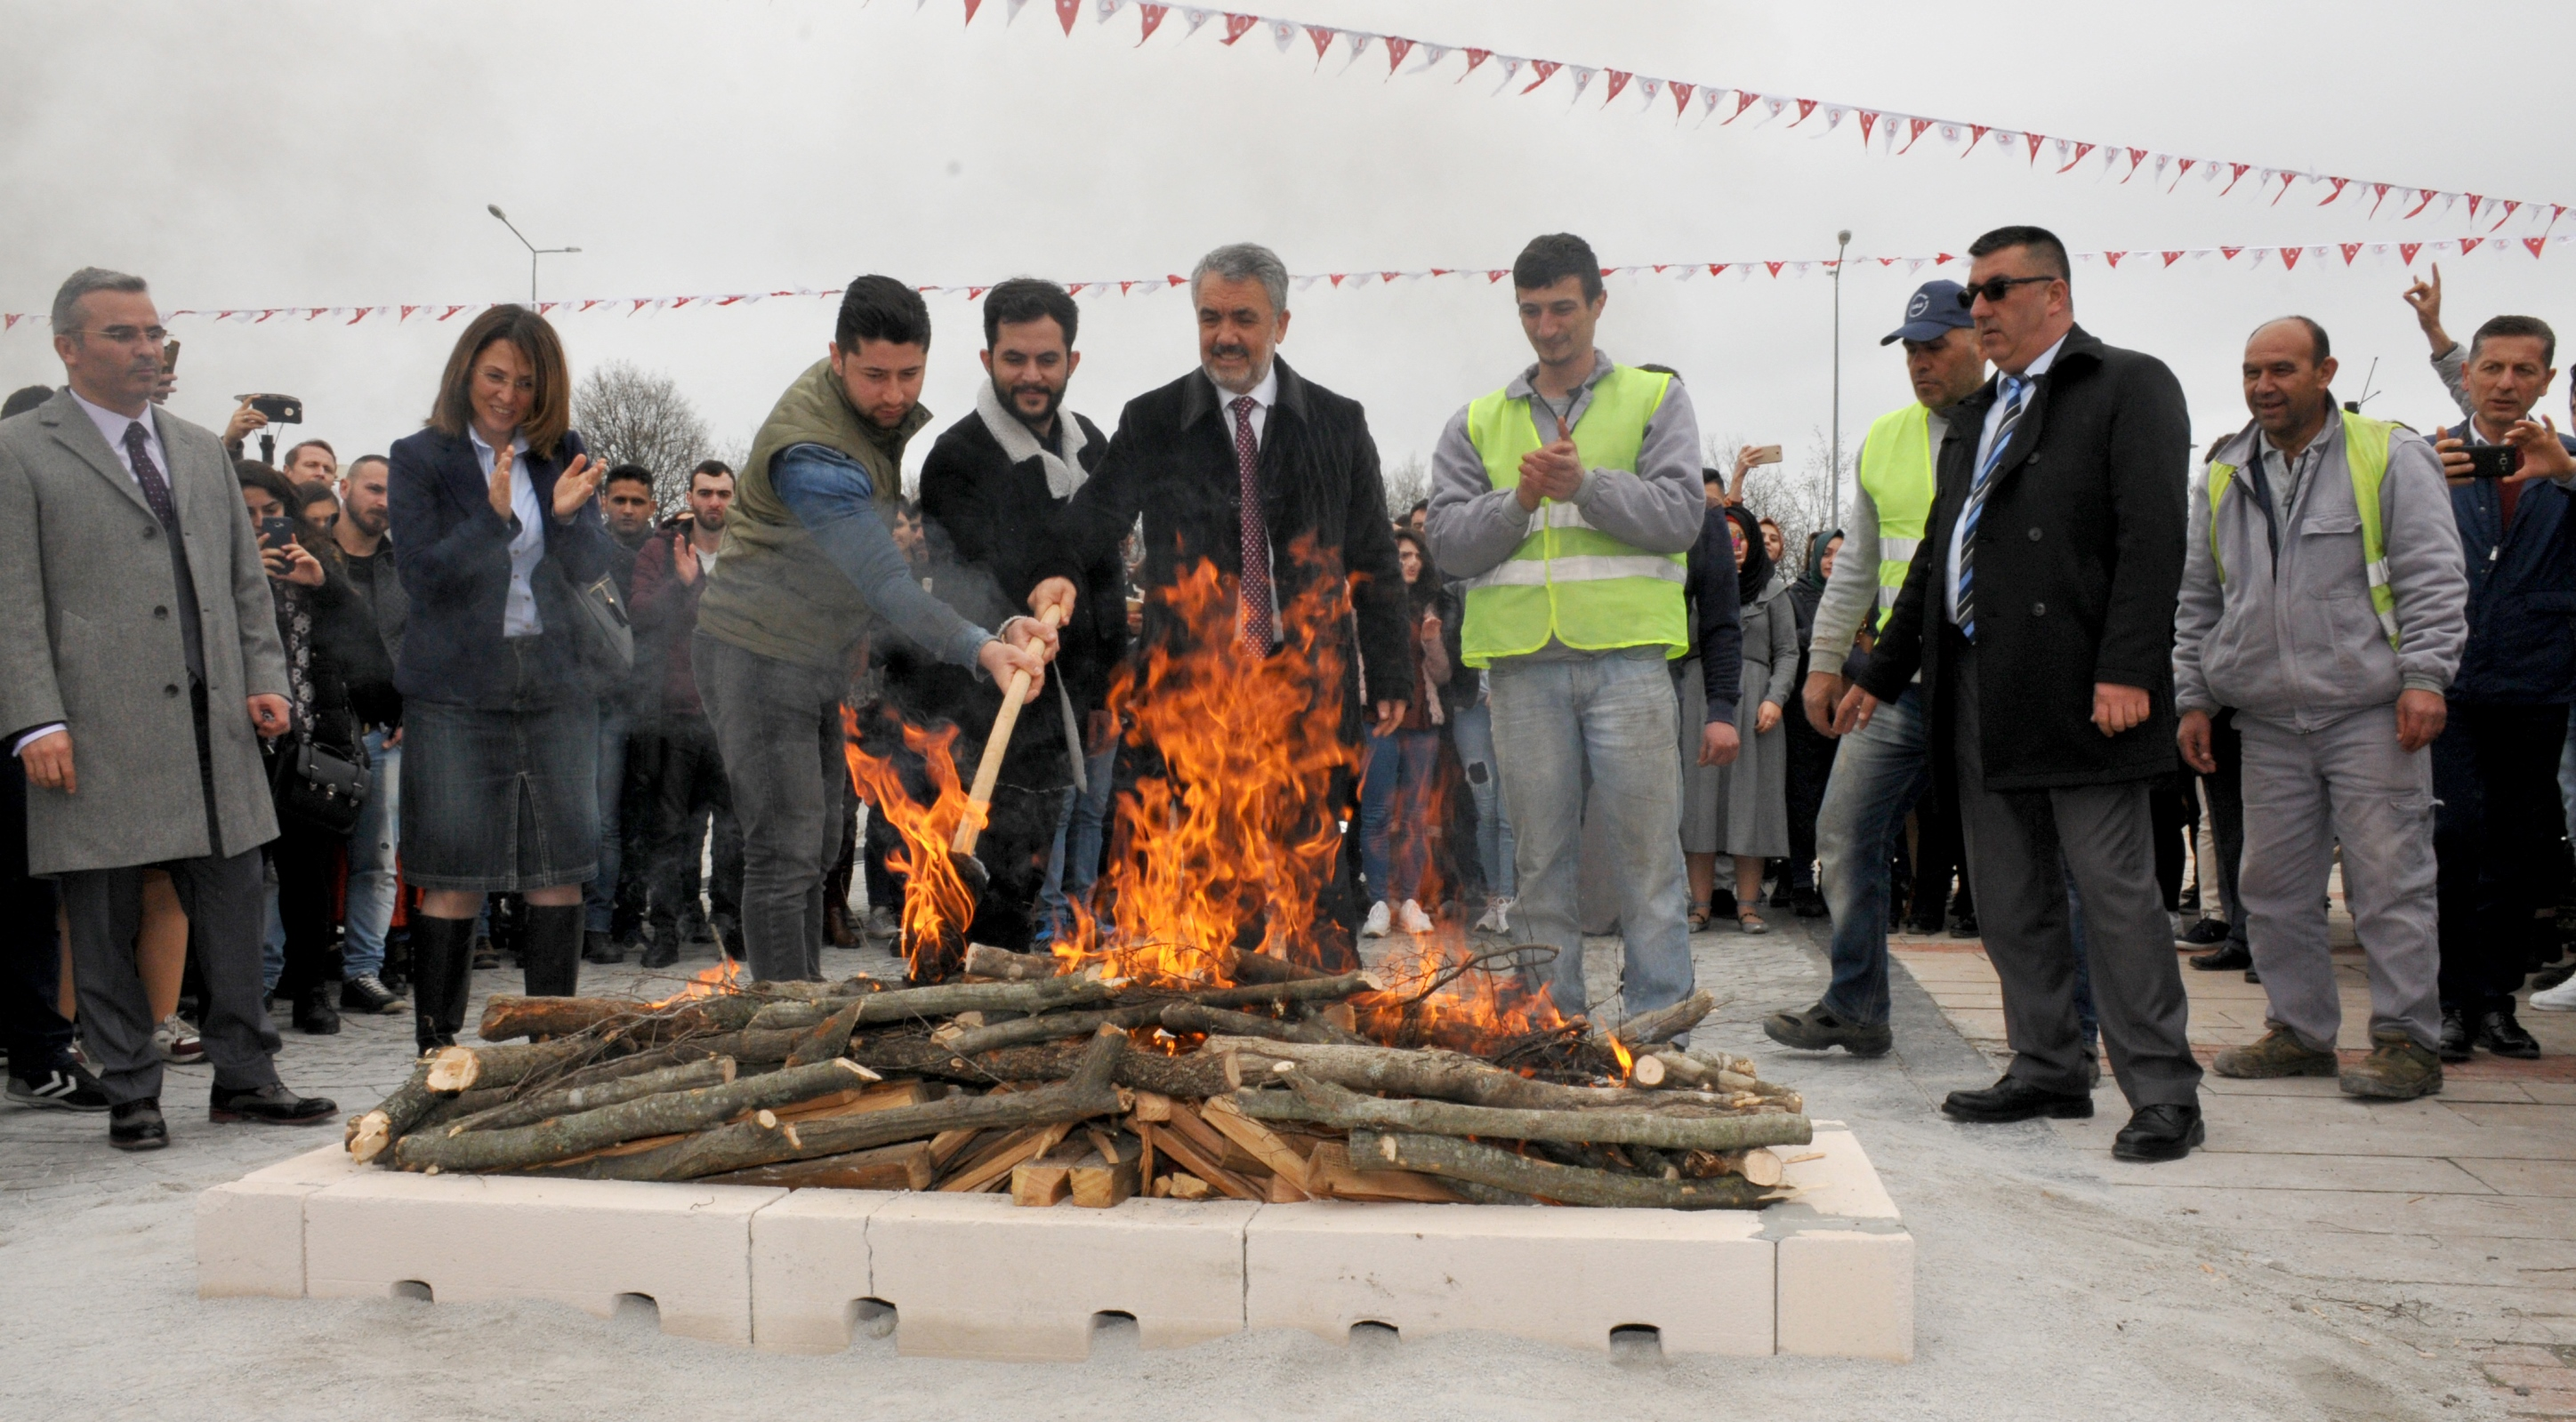 http://www.omu.edu.tr/sites/default/files/files/omu_family_enthusiastically_celebrated_newroz/dsc_0247.jpg